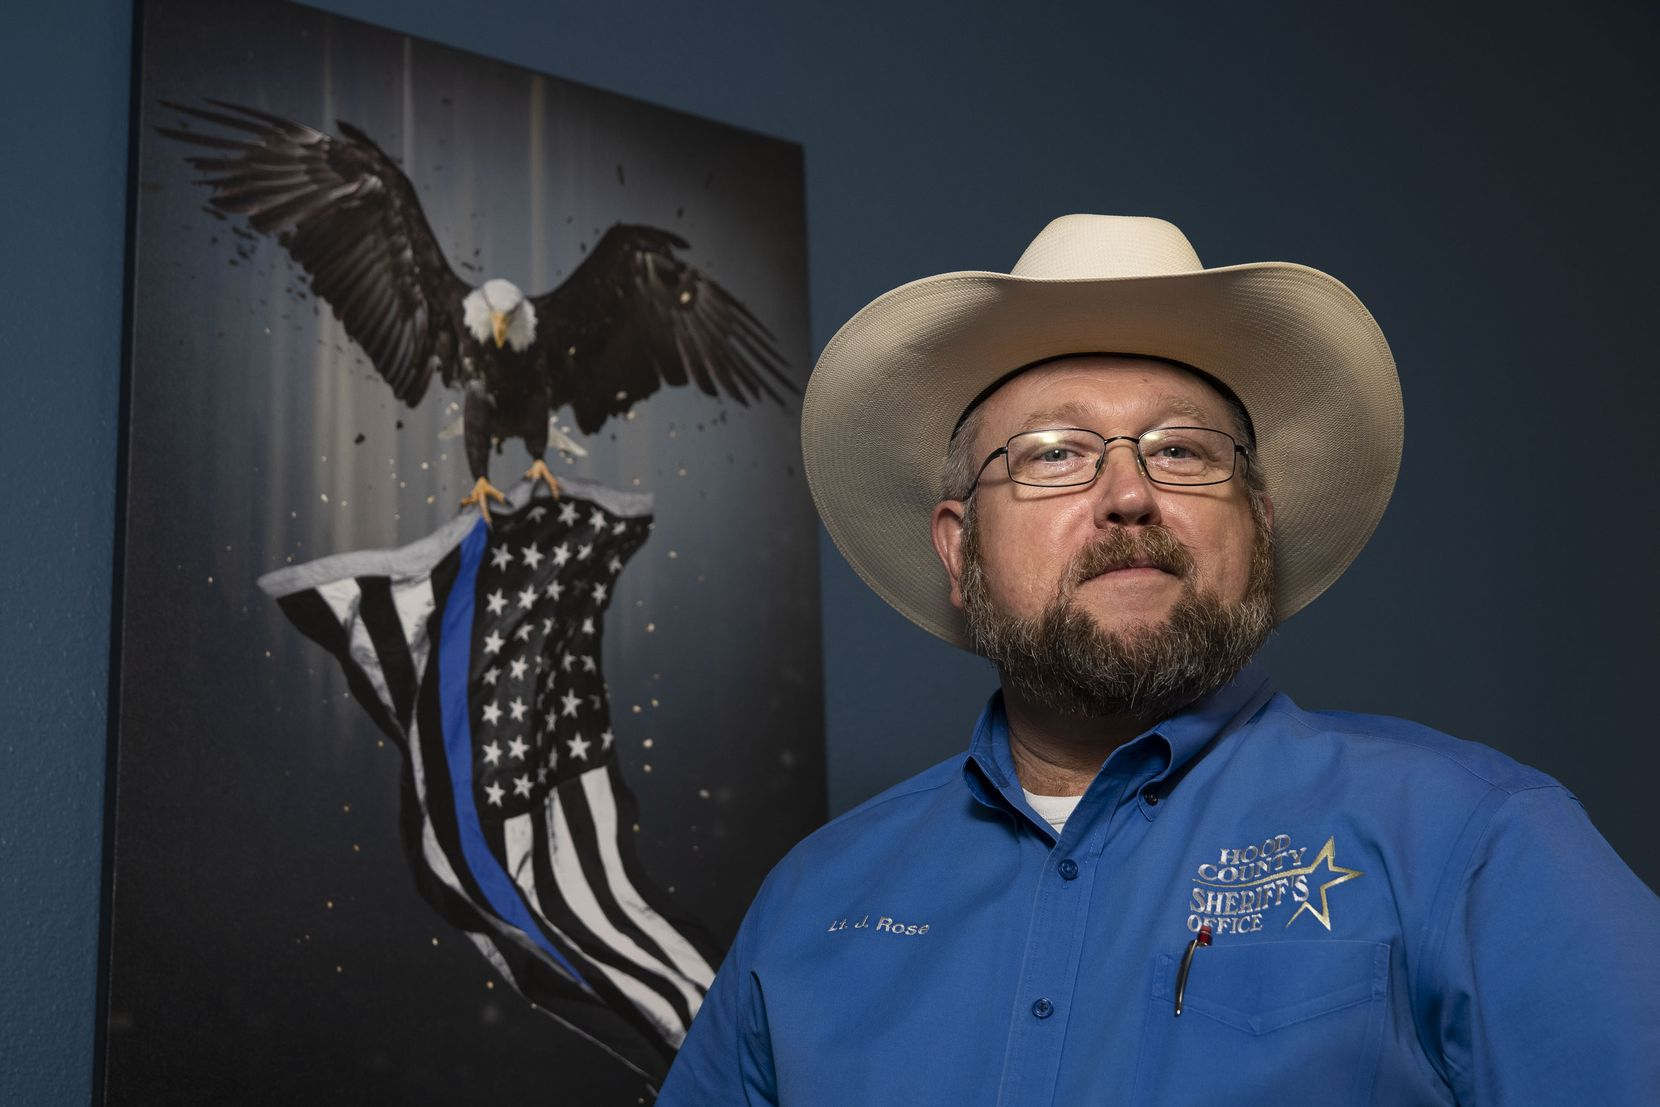 Lt. Johnny Rose poses for a portrait at the Hood County Sheriff's Office in Granbury, Texas, on Thursday, July 1, 2021. Rose helped investigate the death of Christopher Allen Whiteley.